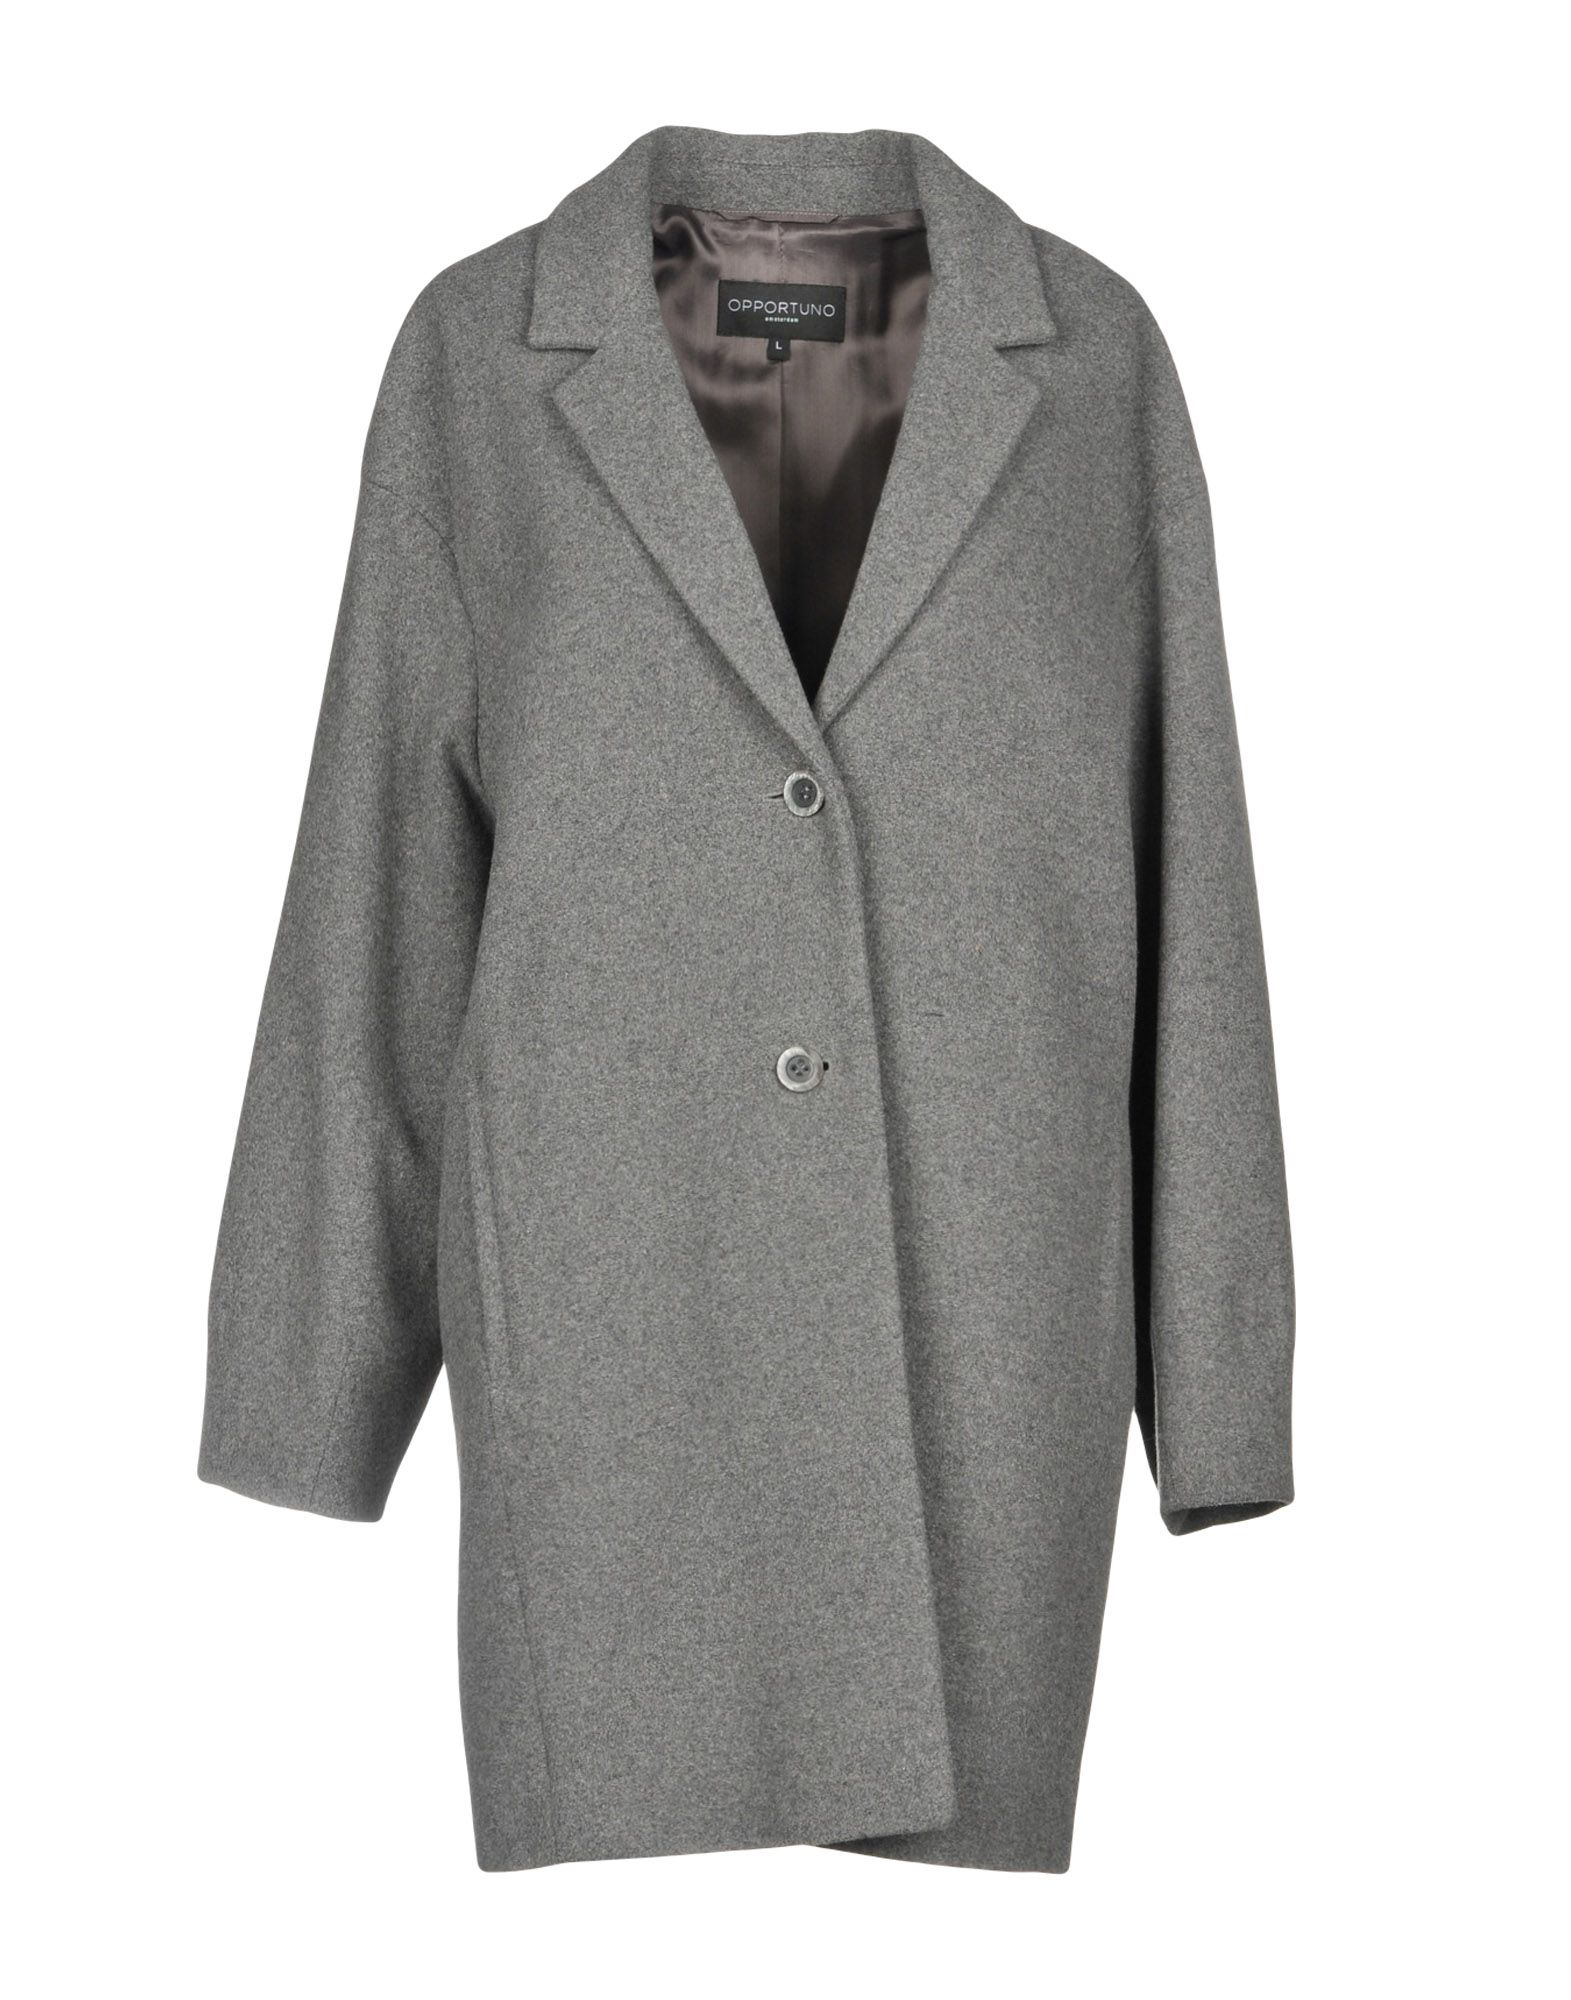 OPPORTUNO Coat in Grey